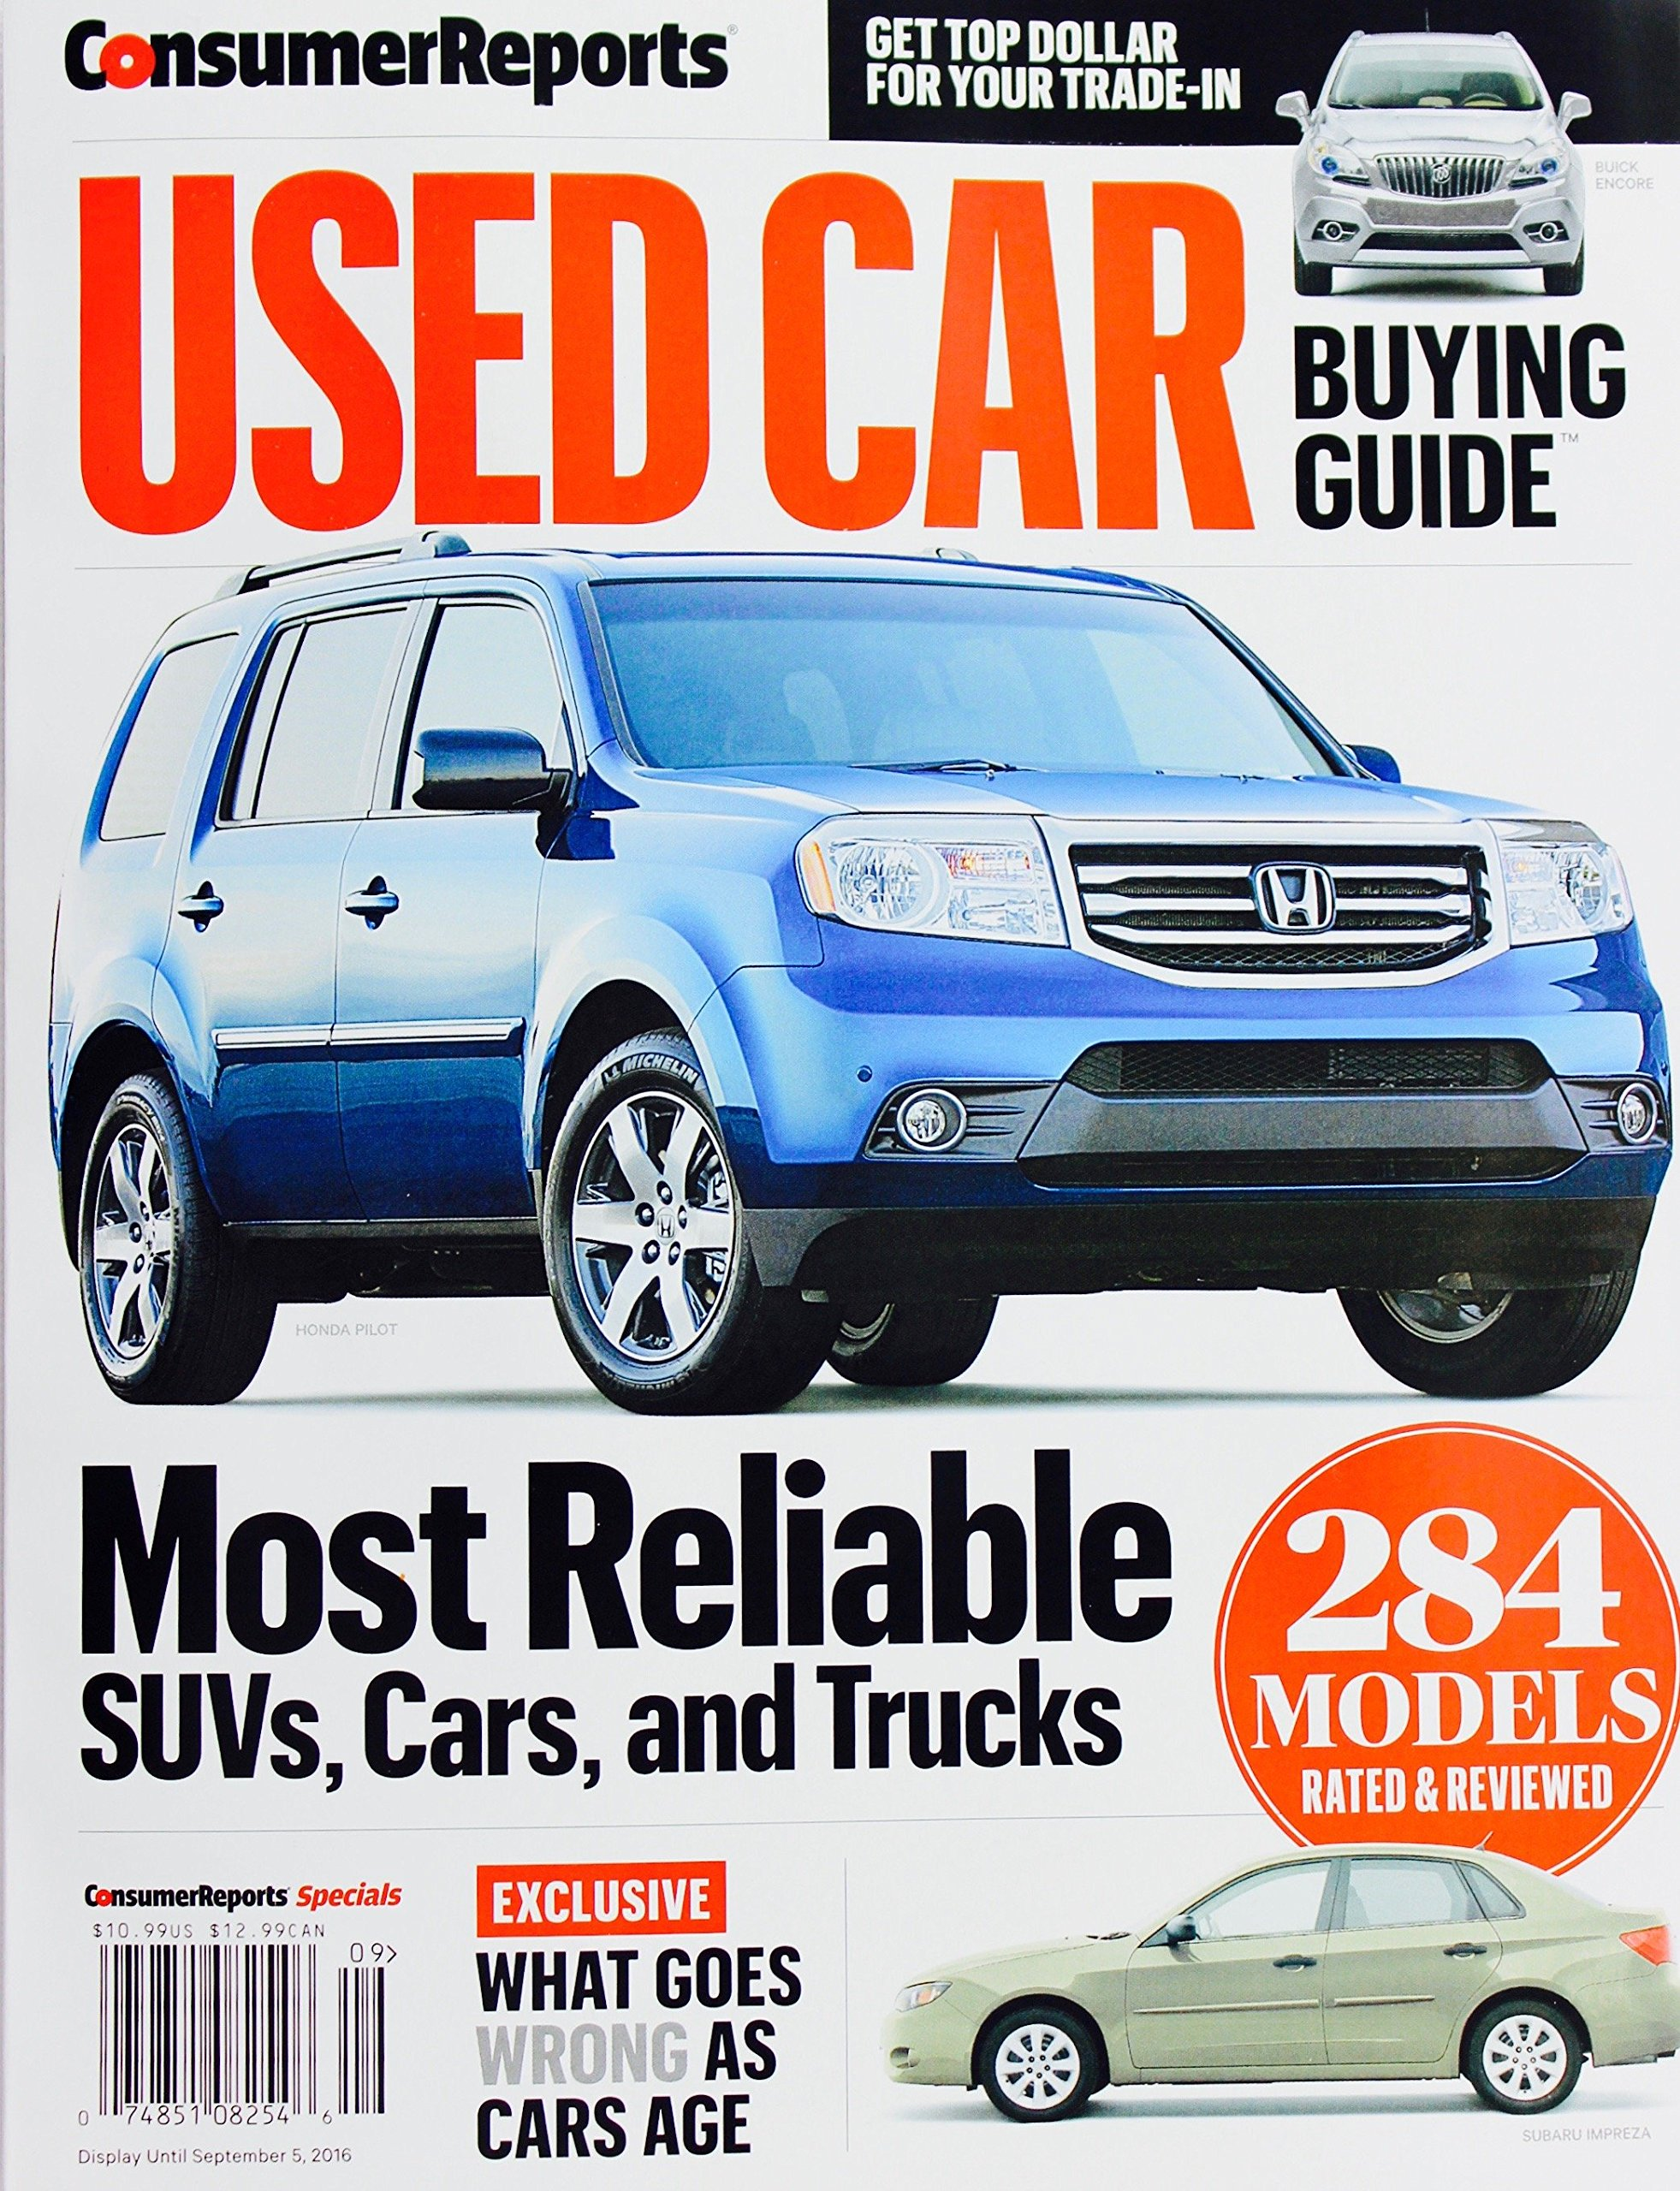 Consumer Reports Used Car Buying Guide, September 2016: Amazon.com: Books